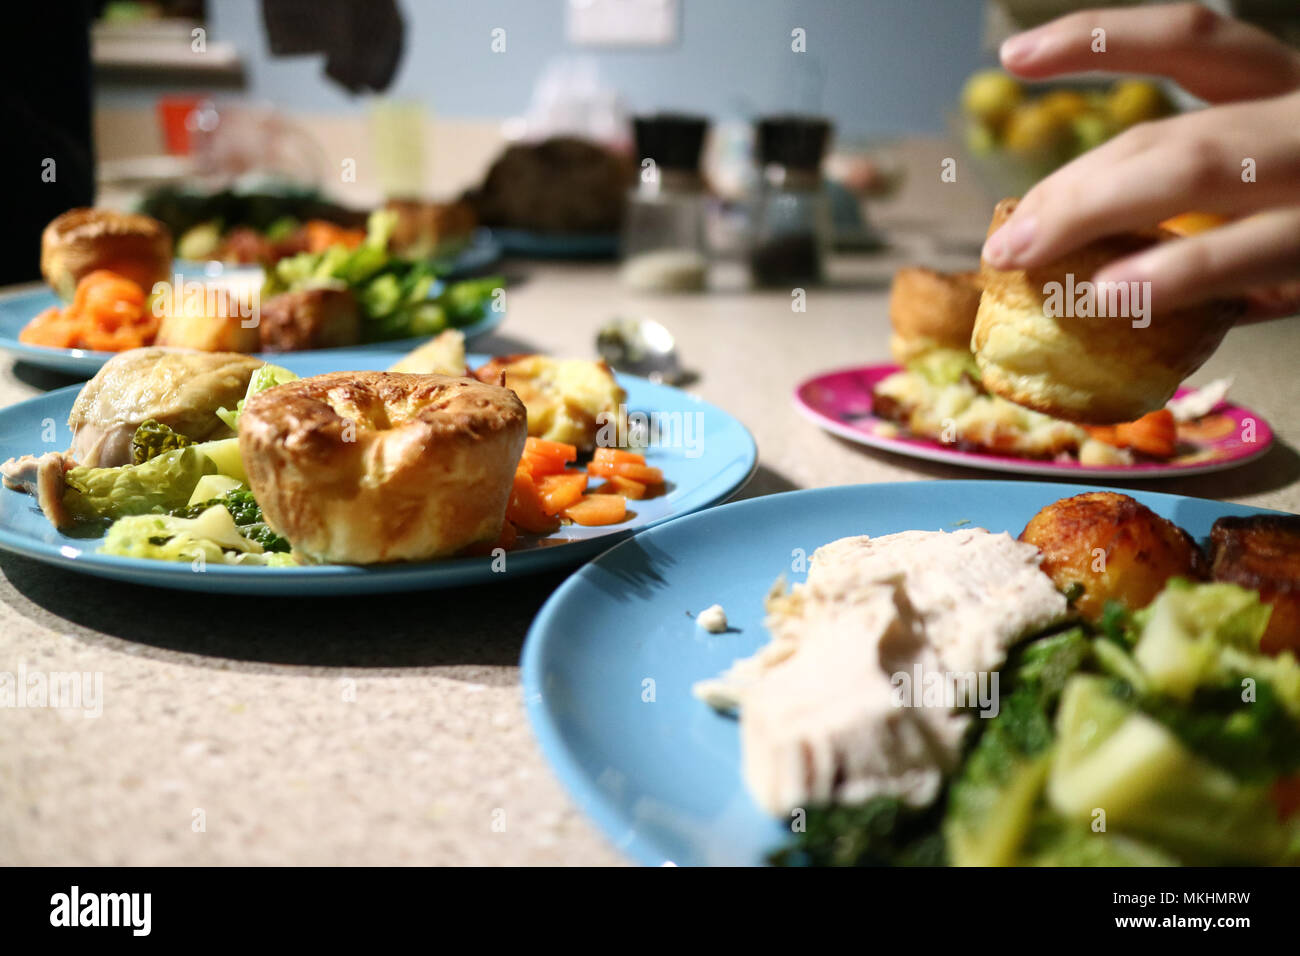 Roast dinners ready to serve while a hand steals a Yorkshire pudding. - Stock Image